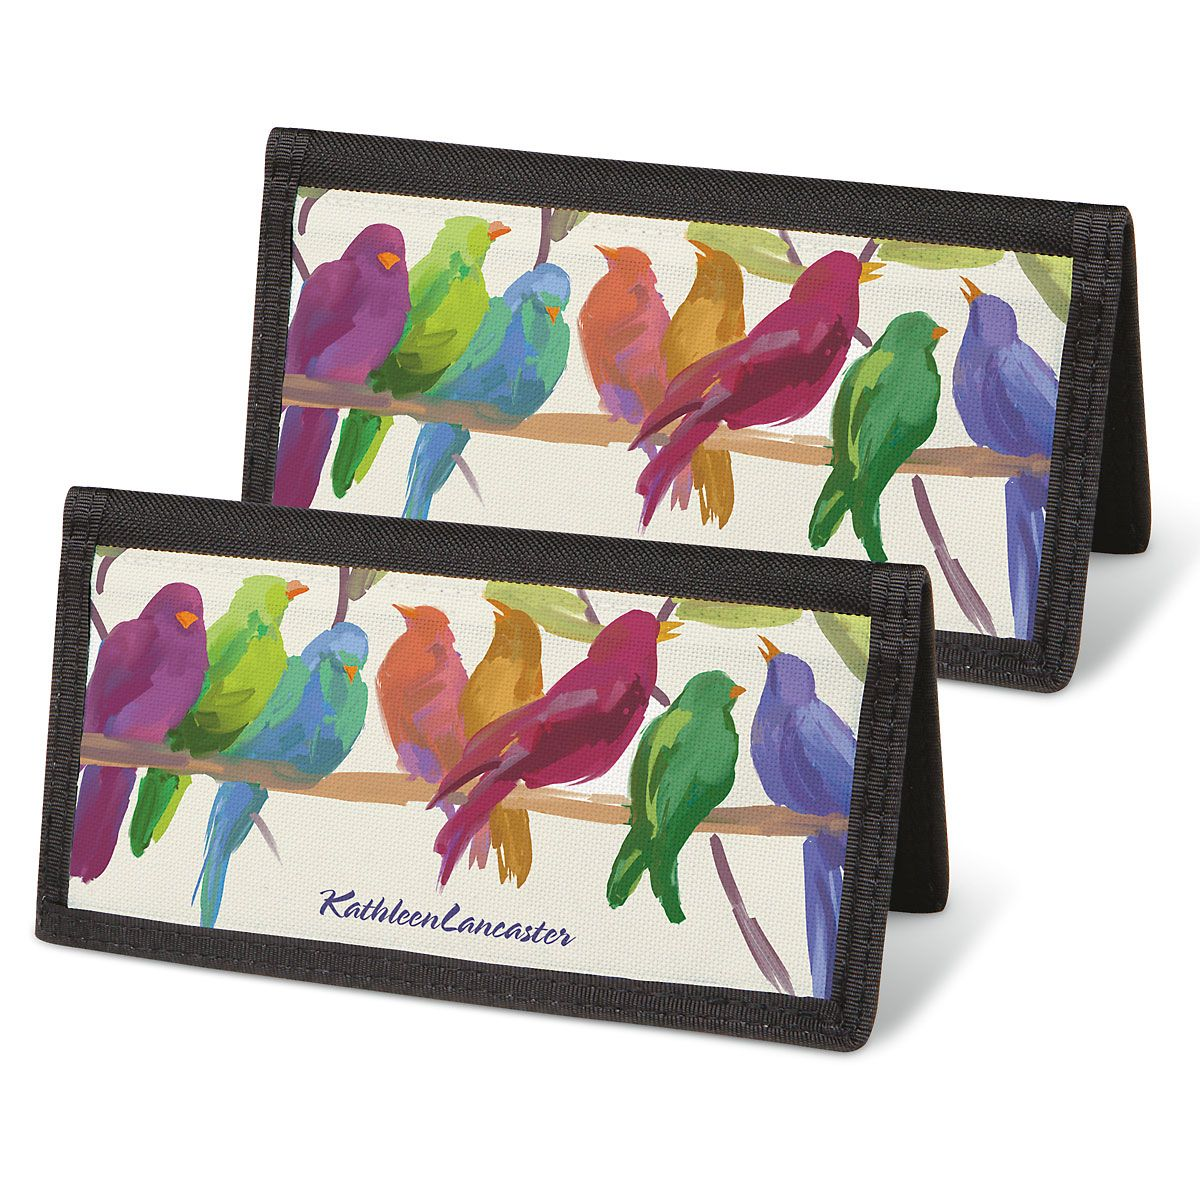 Flocked Together Personal Checkbook Covers